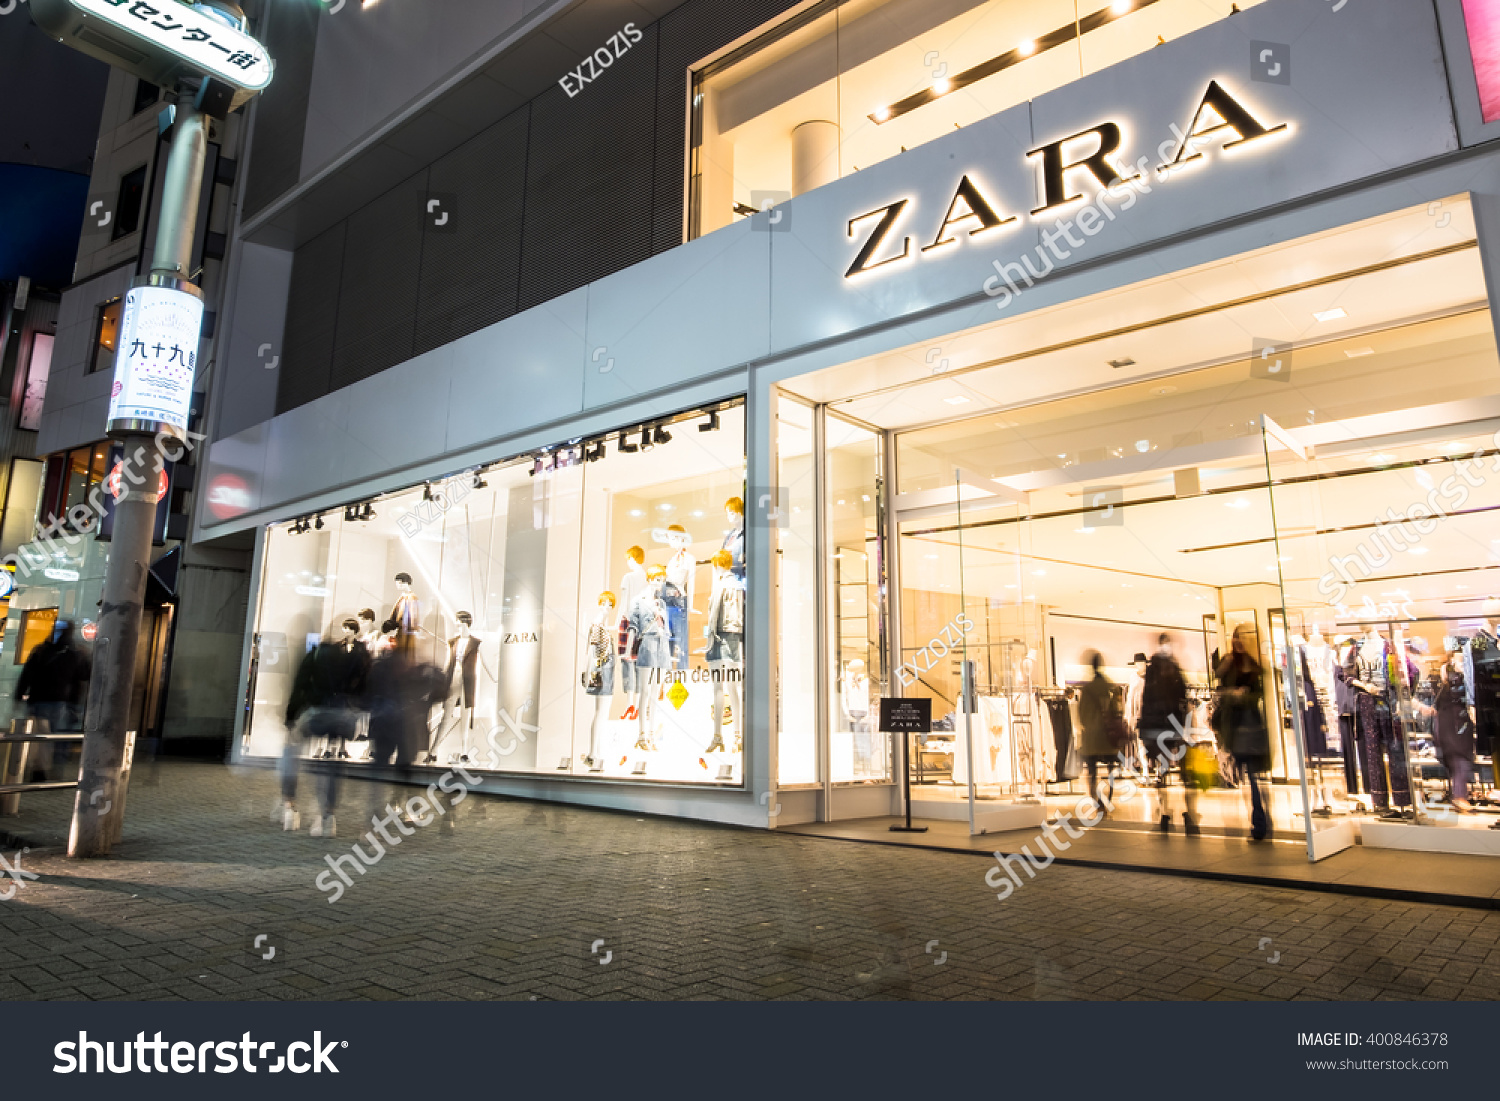 How To Buy Stock Reddit Solution For How To For Dummies Tokyo Mar 5 Zara  Store At Night On Mar 5 2016 In Shibuya , Tokyo Tokyo